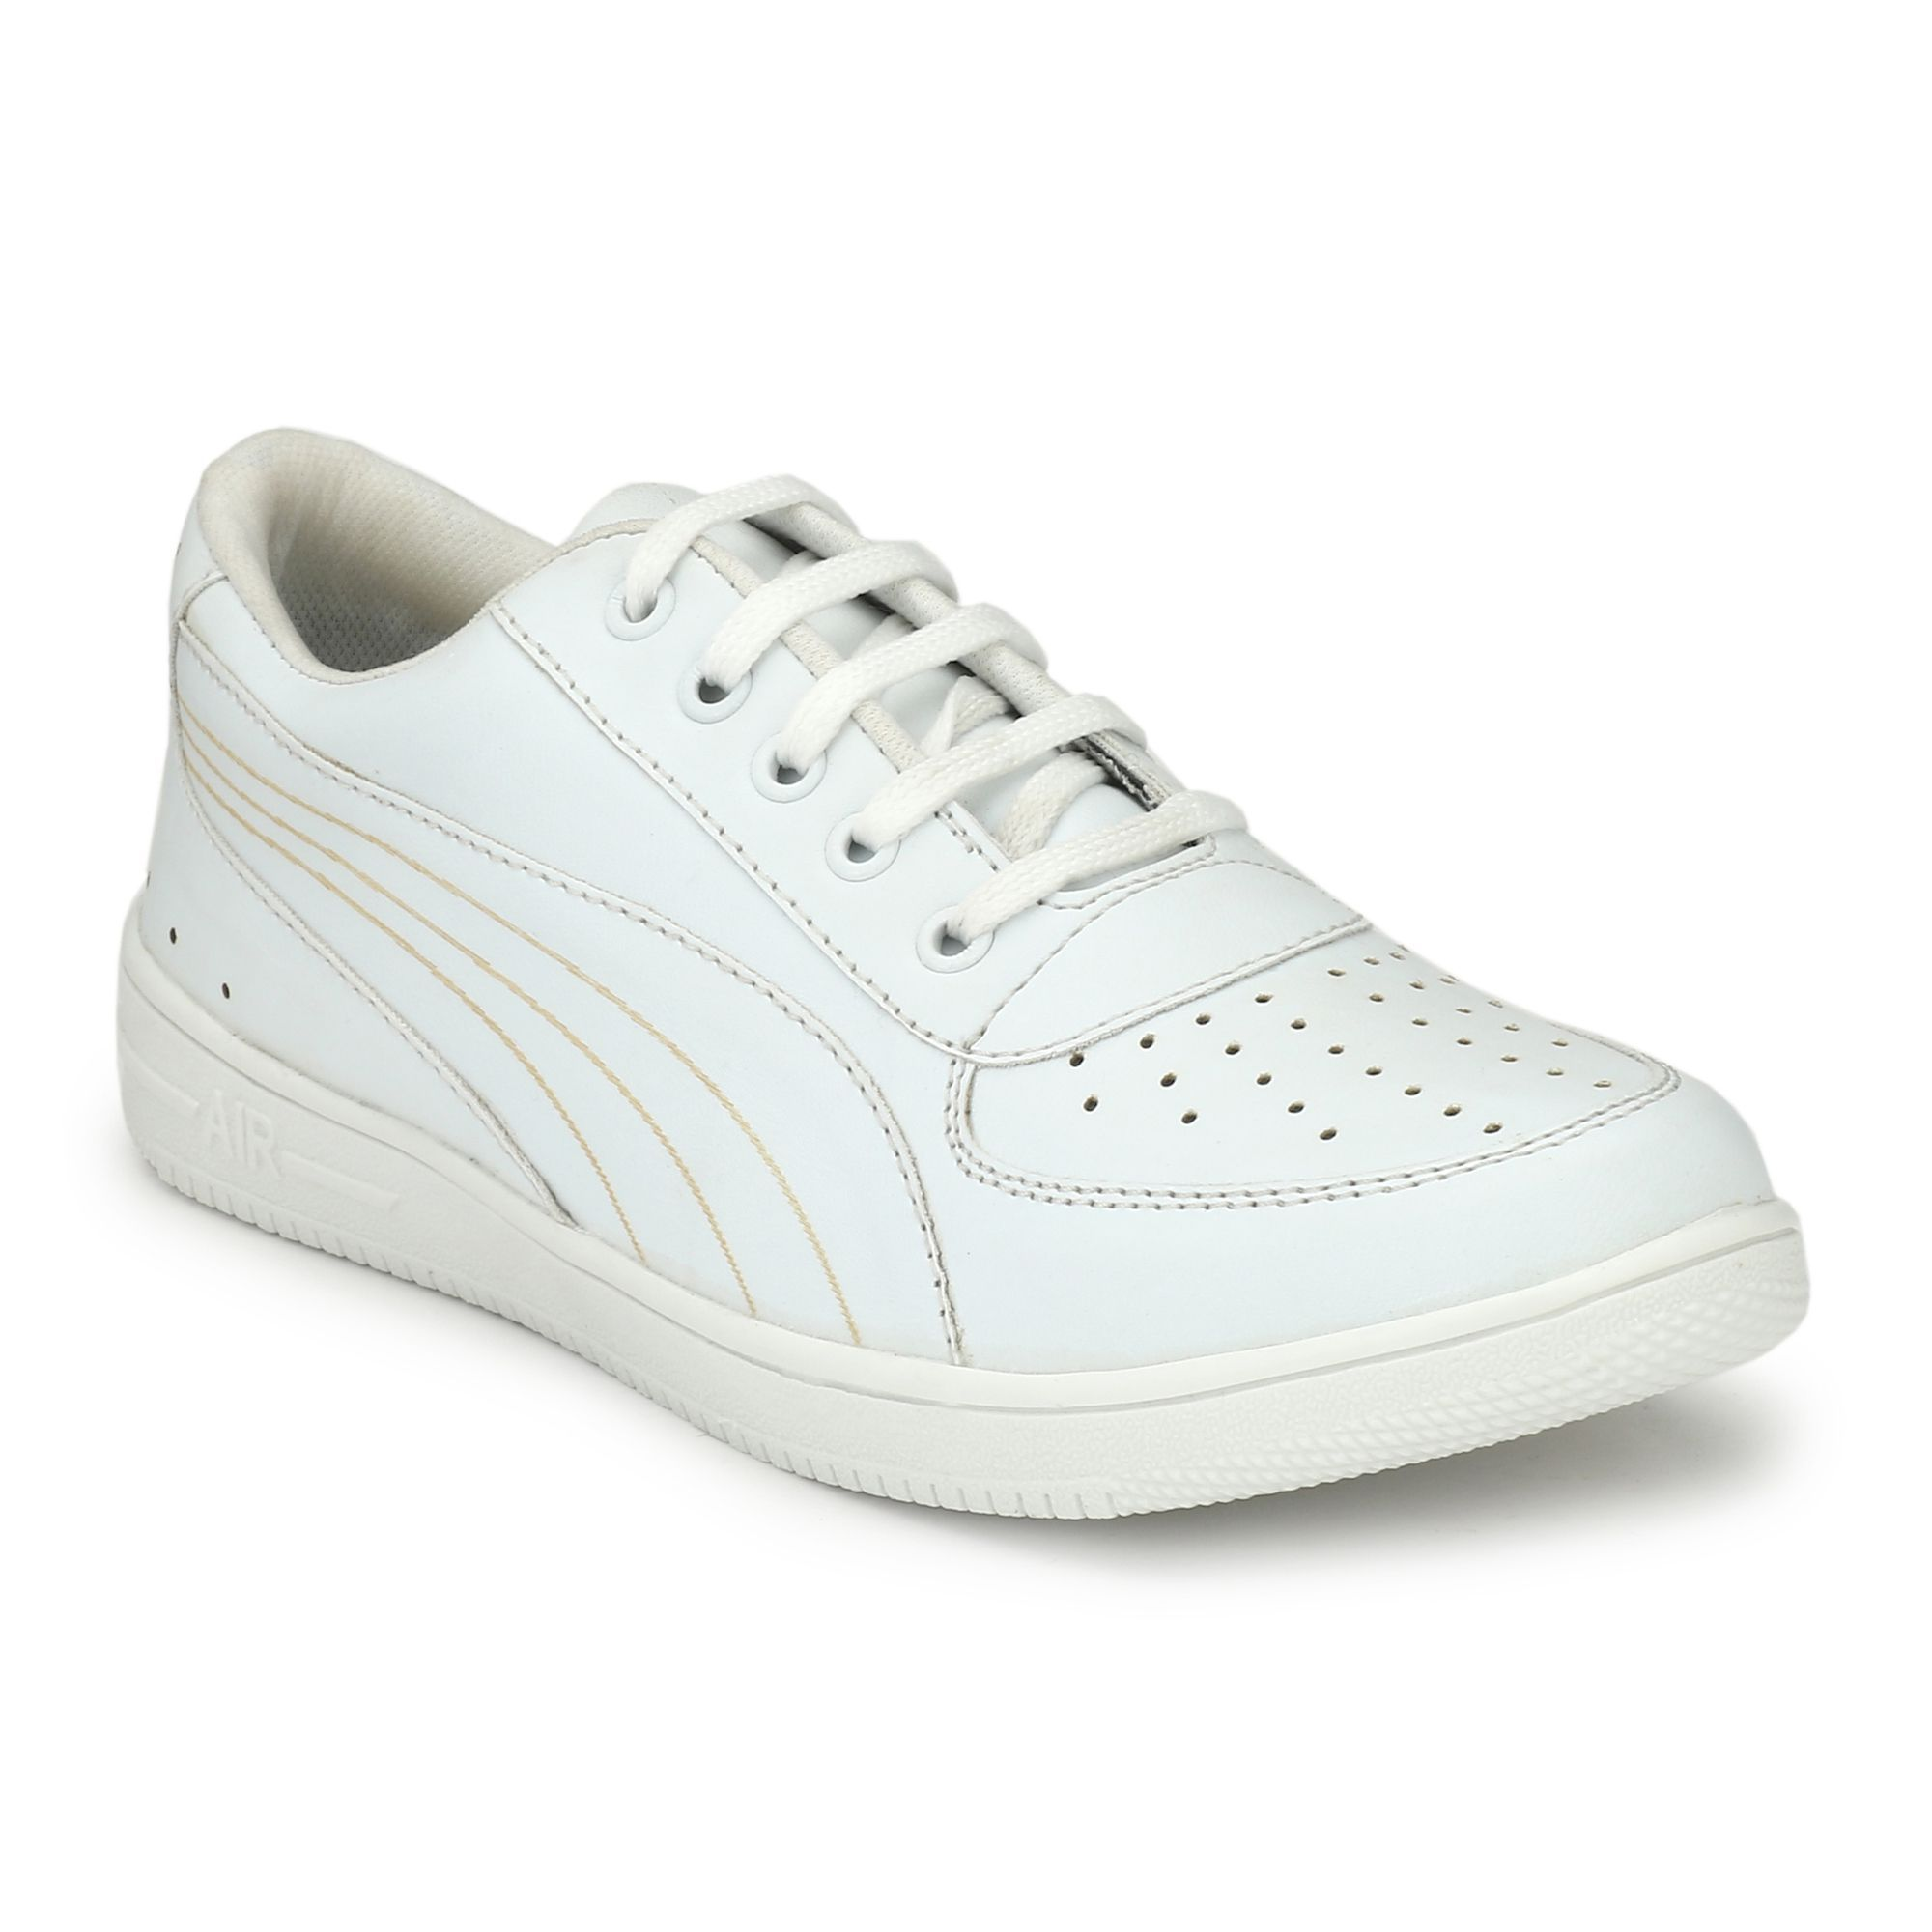 34f1ca0beaaa AARIC LC24 Sneakers White Casual Shoes - Buy AARIC LC24 Sneakers White  Casual Shoes Online at Best Prices in India on Snapdeal